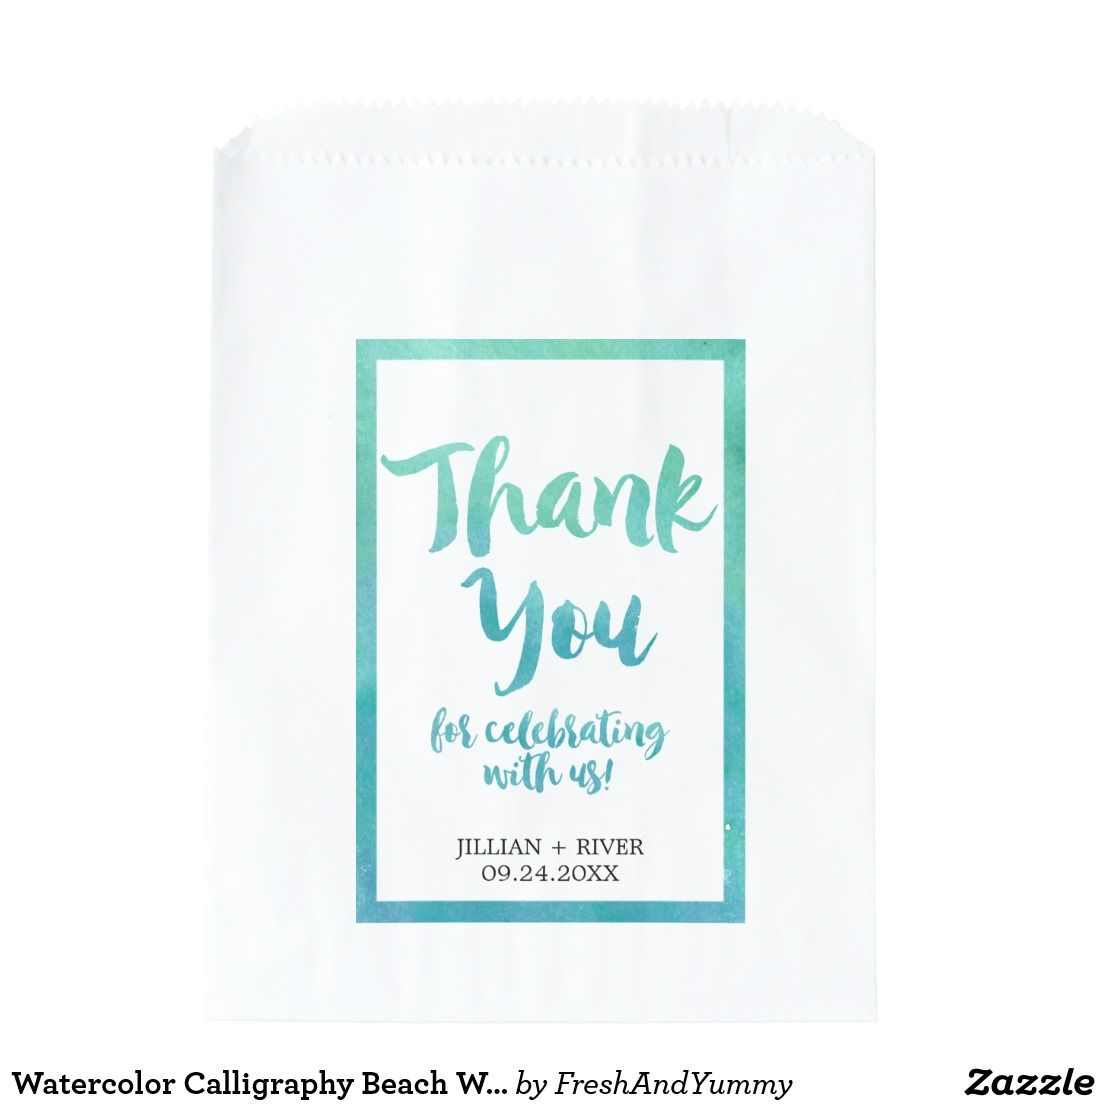 Watercolor Calligraphy Beach Wedding Favor Bags | Wedding favor bags ...